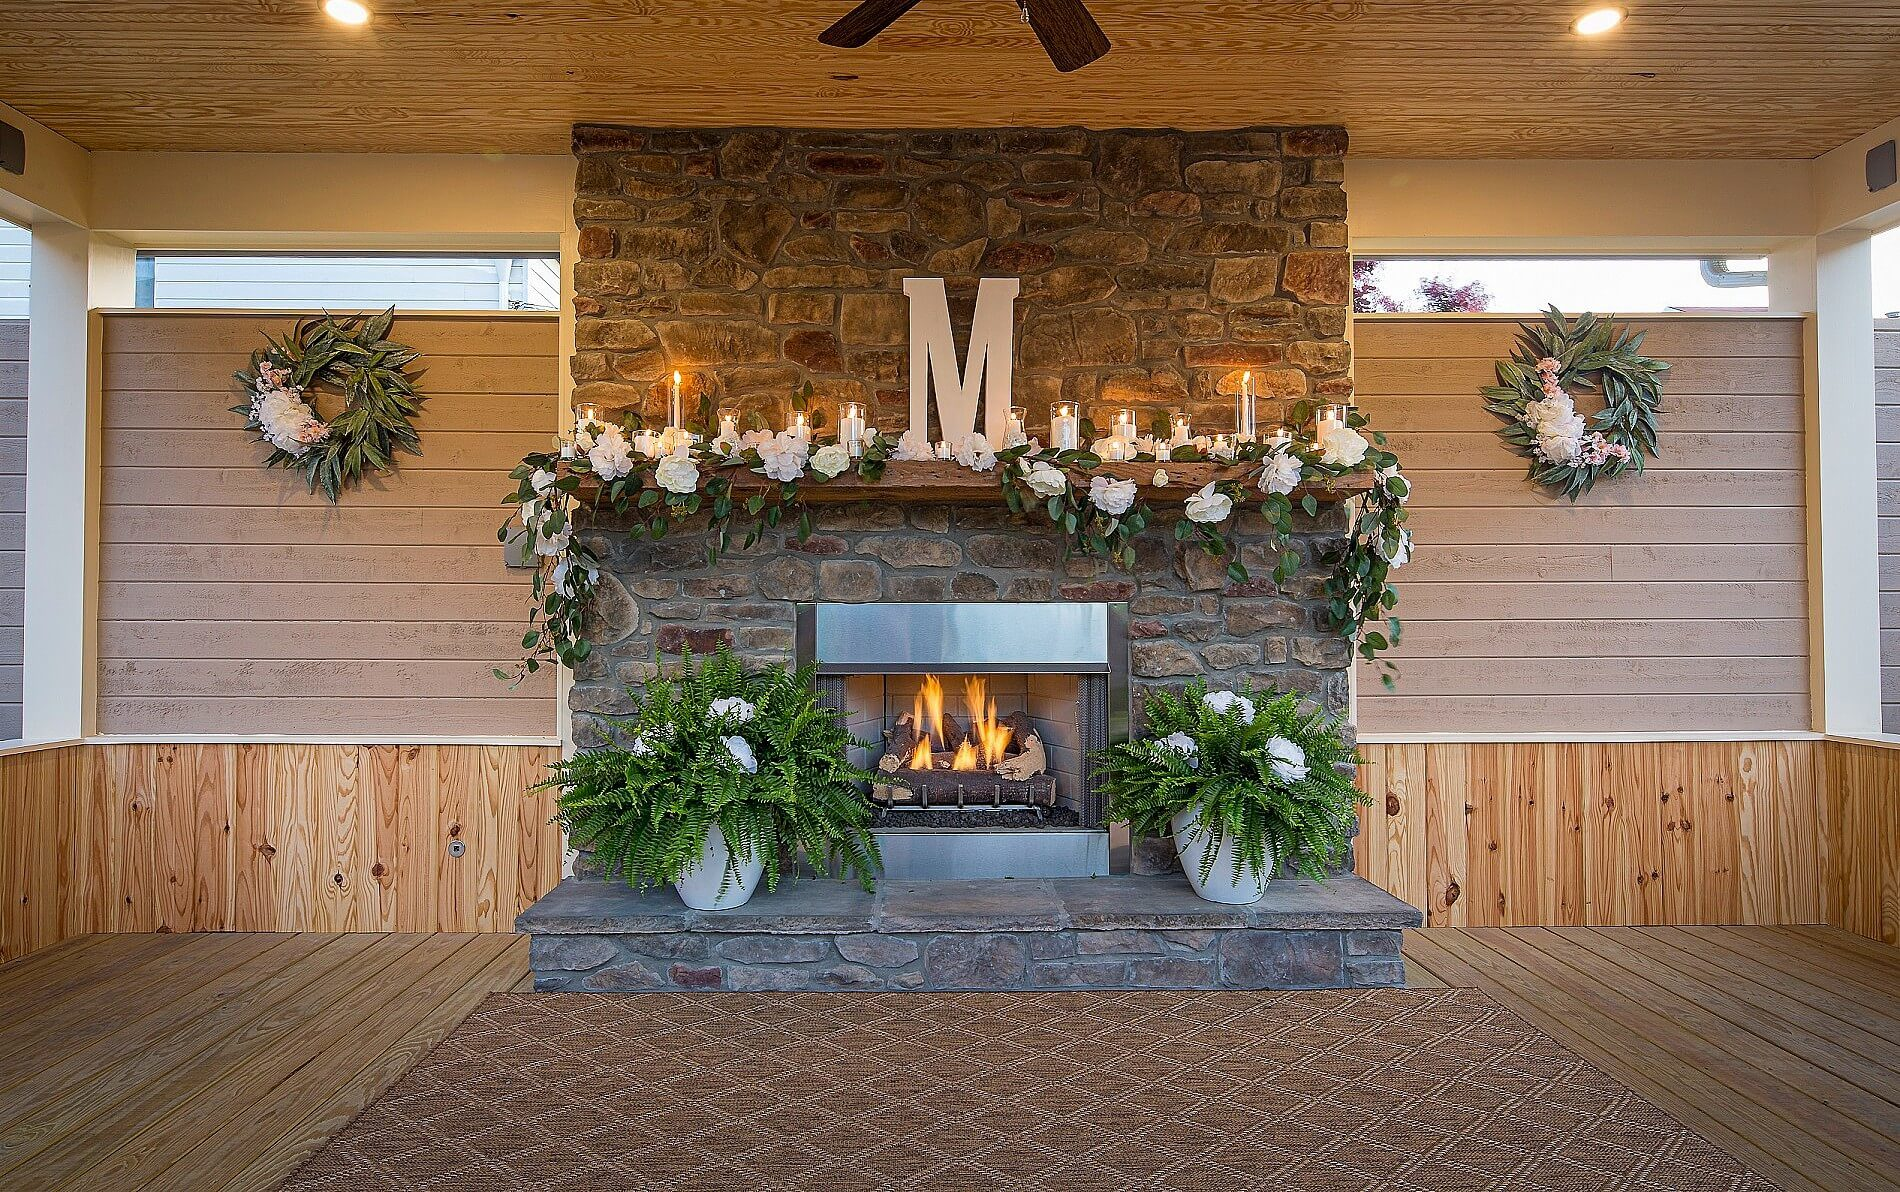 Lit brick fireplace with white flowers and burning candles on wooden mantle